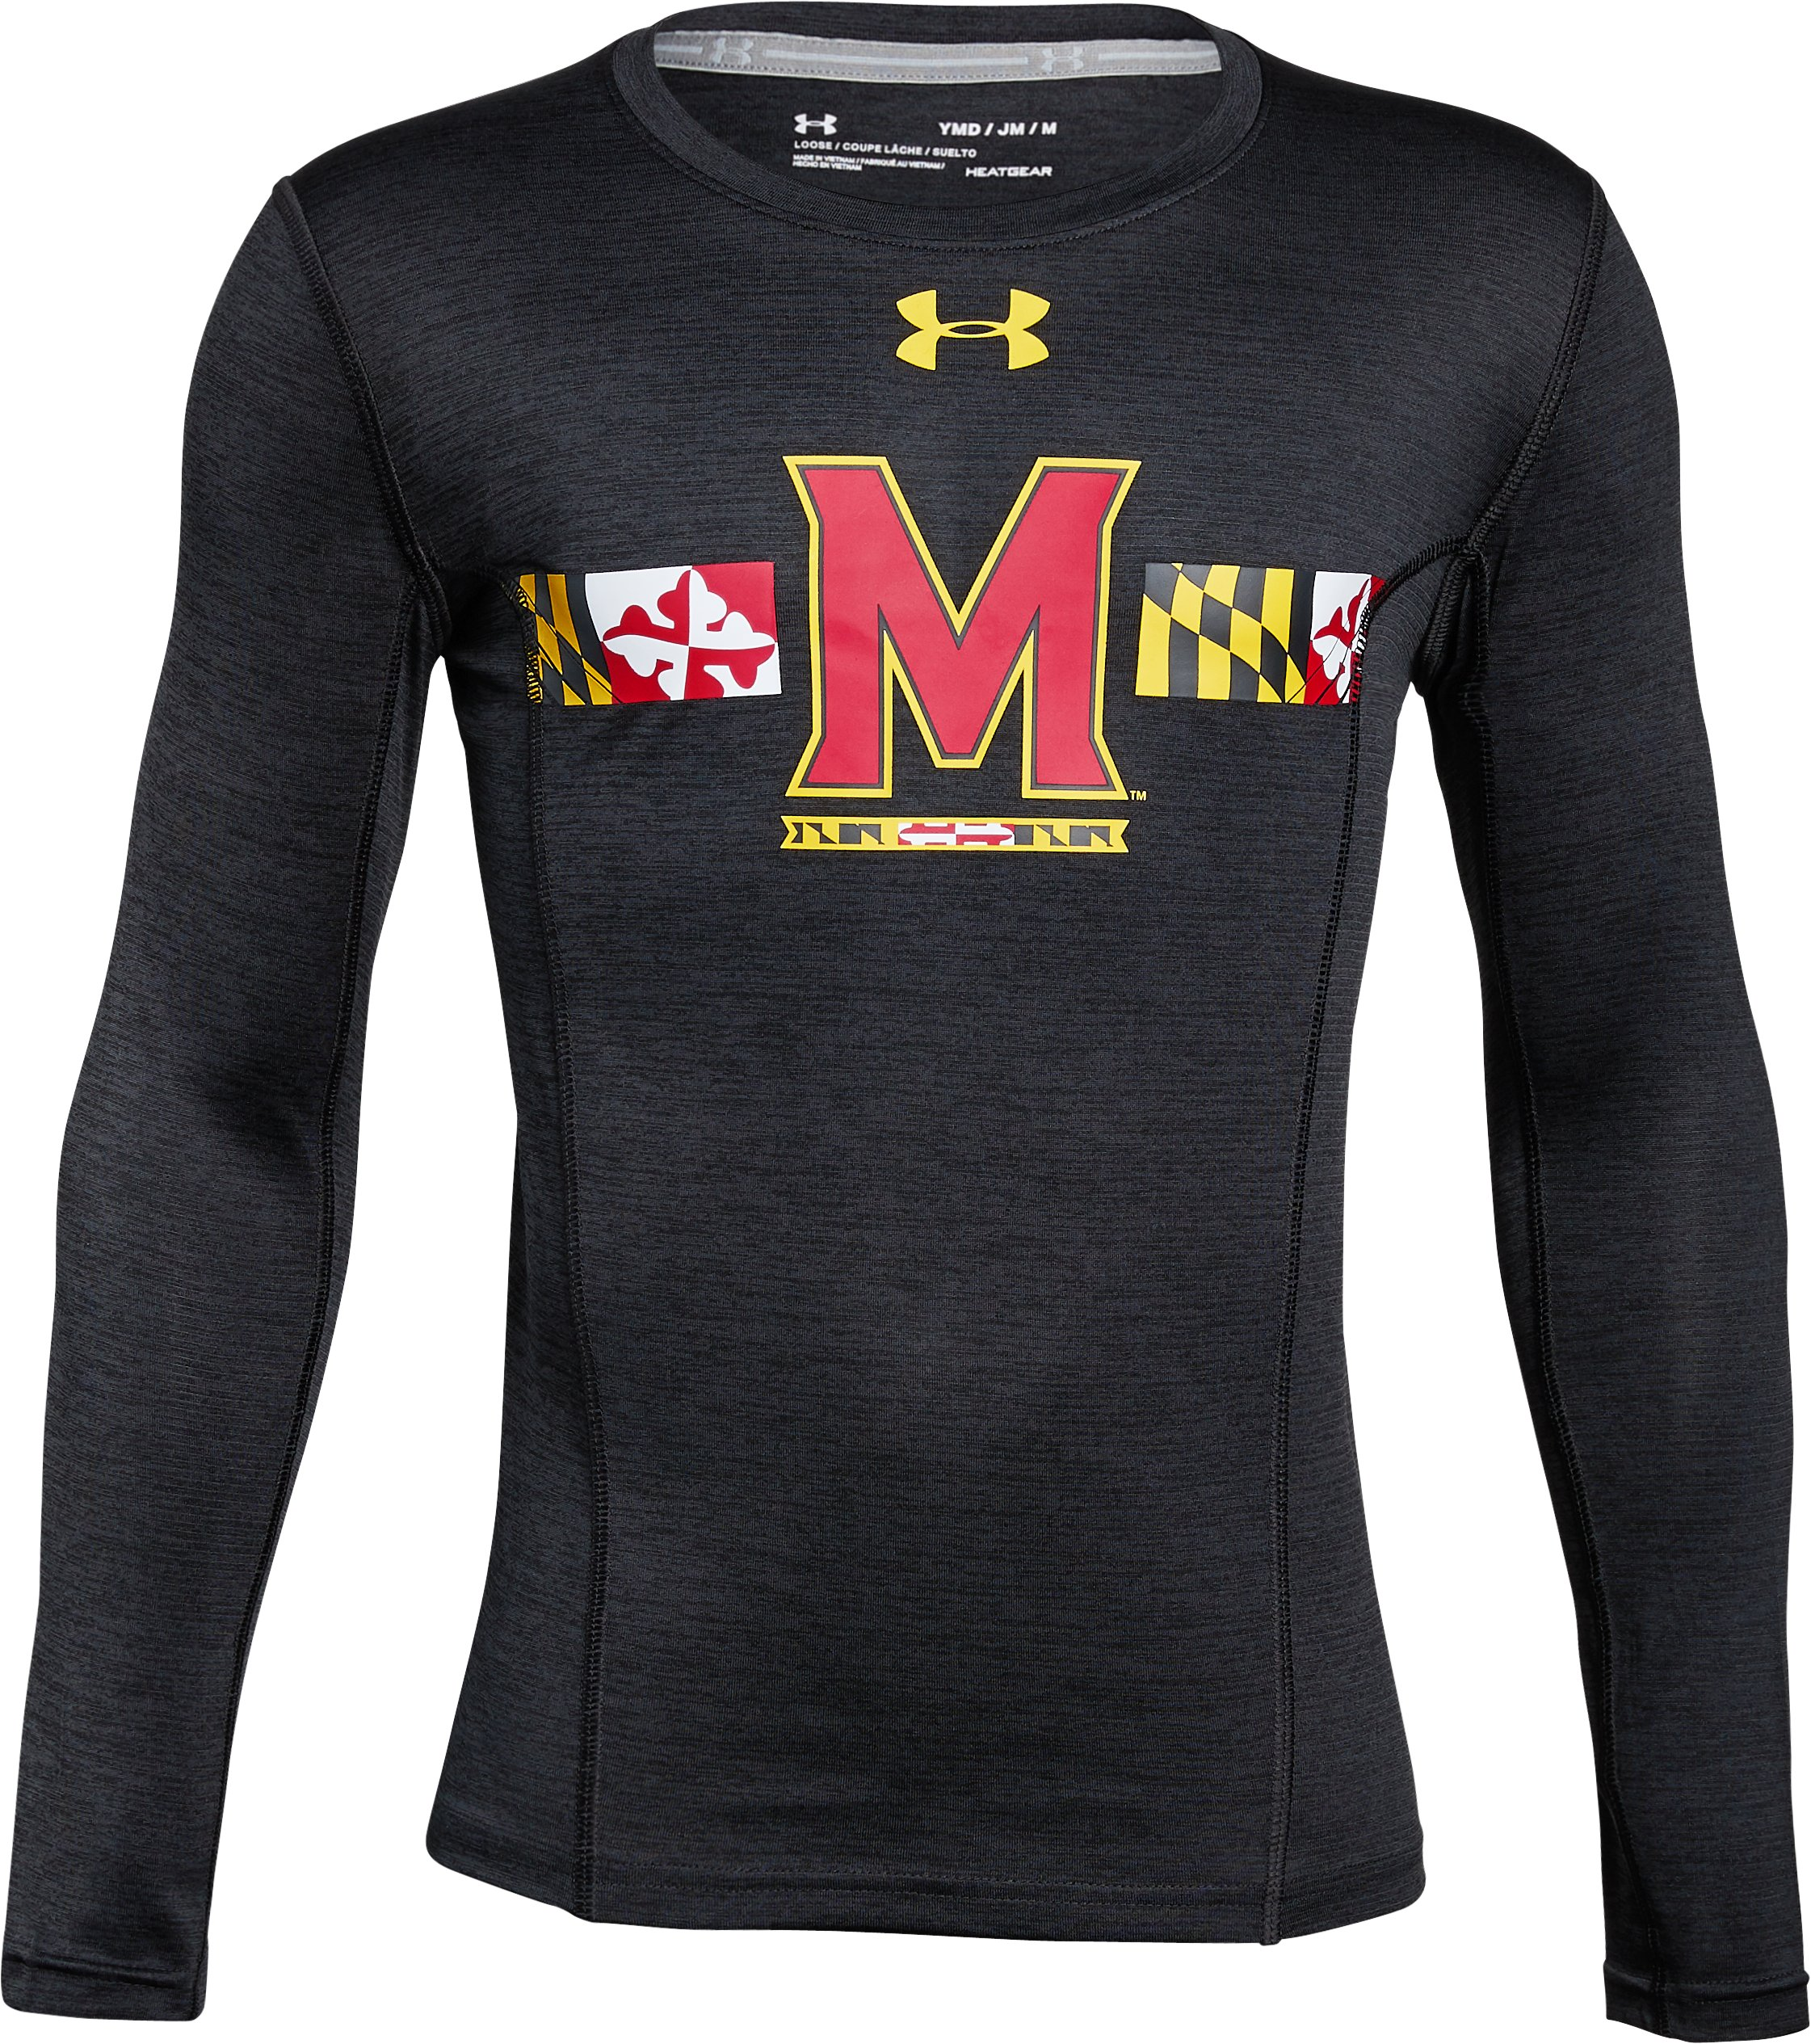 Boys' Maryland Long Sleeve Training T-Shirt, Black , undefined